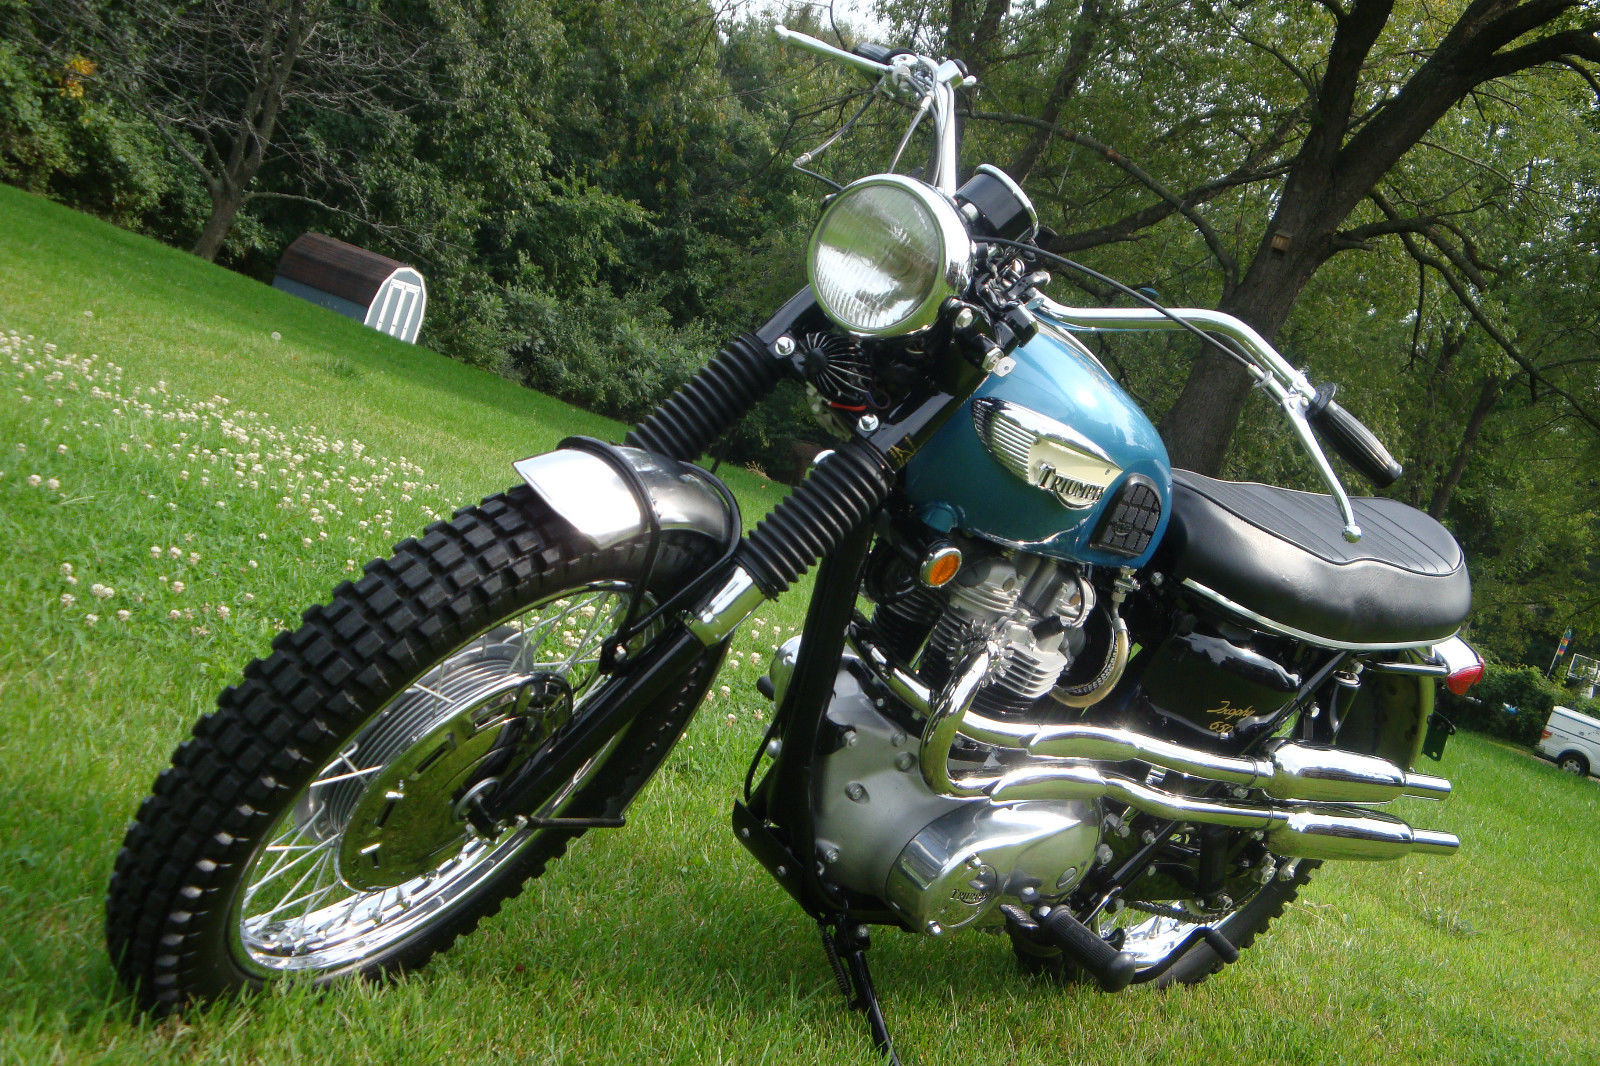 Triumph Trophy Tr6c 1968 Restored Classic Motorcycles At Bikes Wiring Harness For 1971 Motorcycle